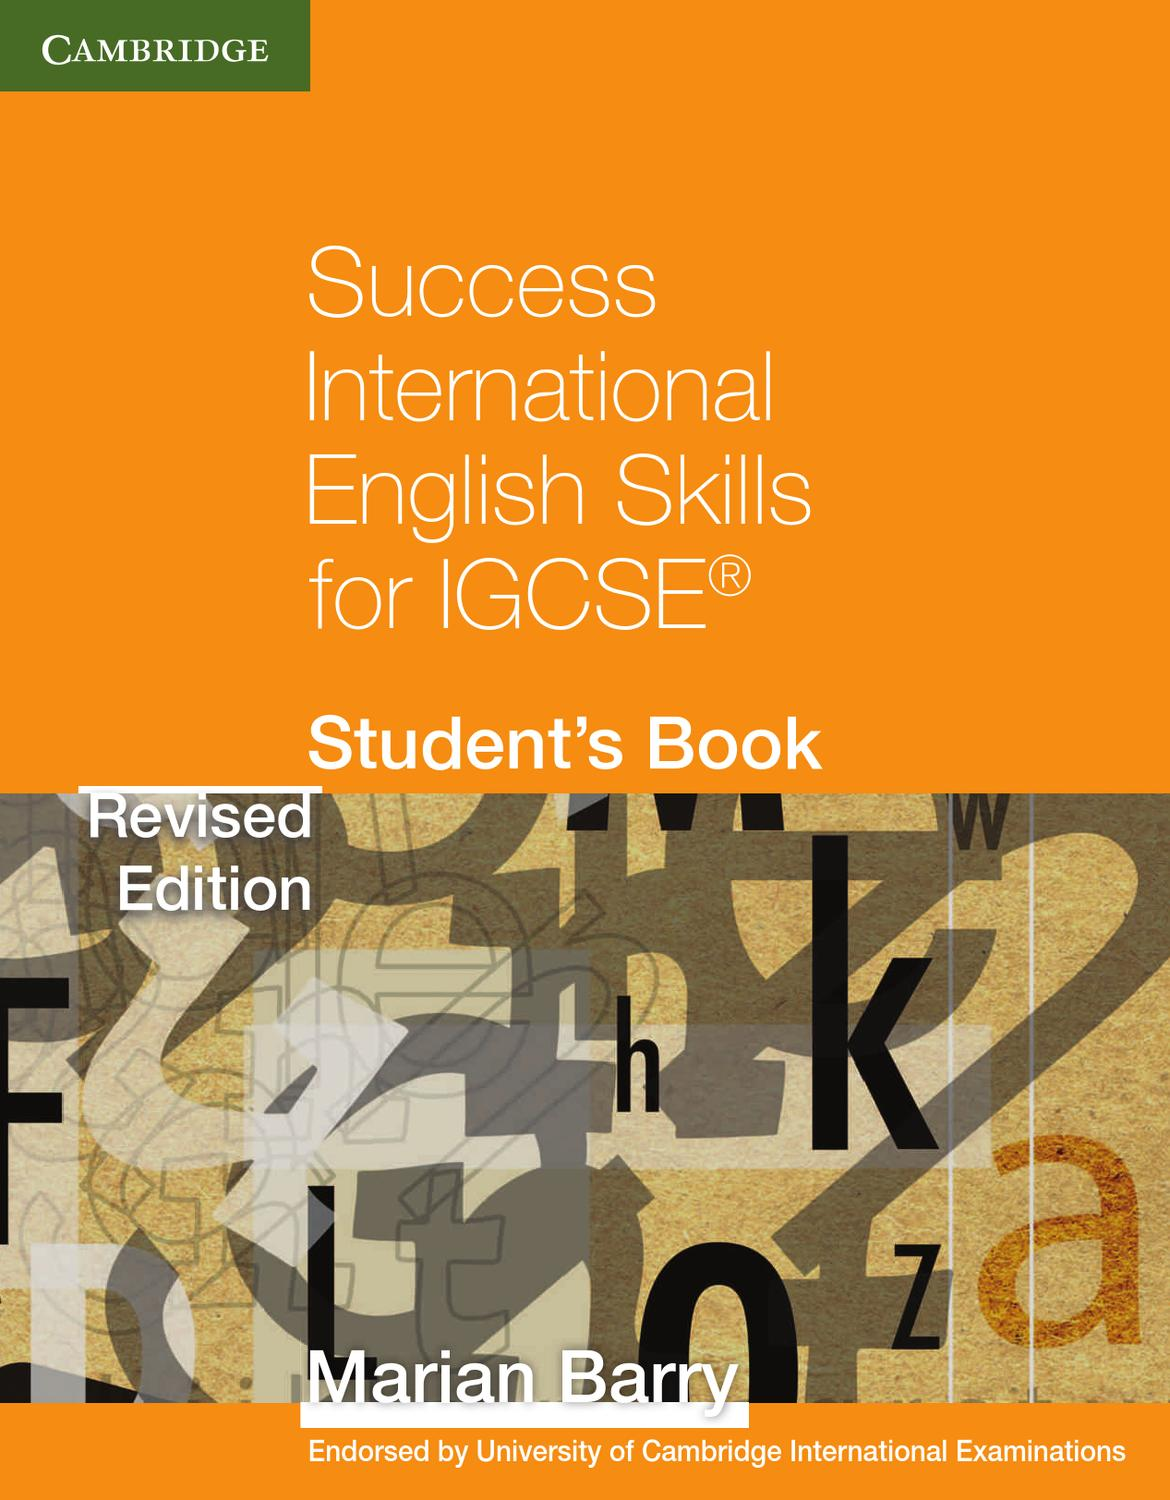 Success International English Skills for IGCSE: Student's Book